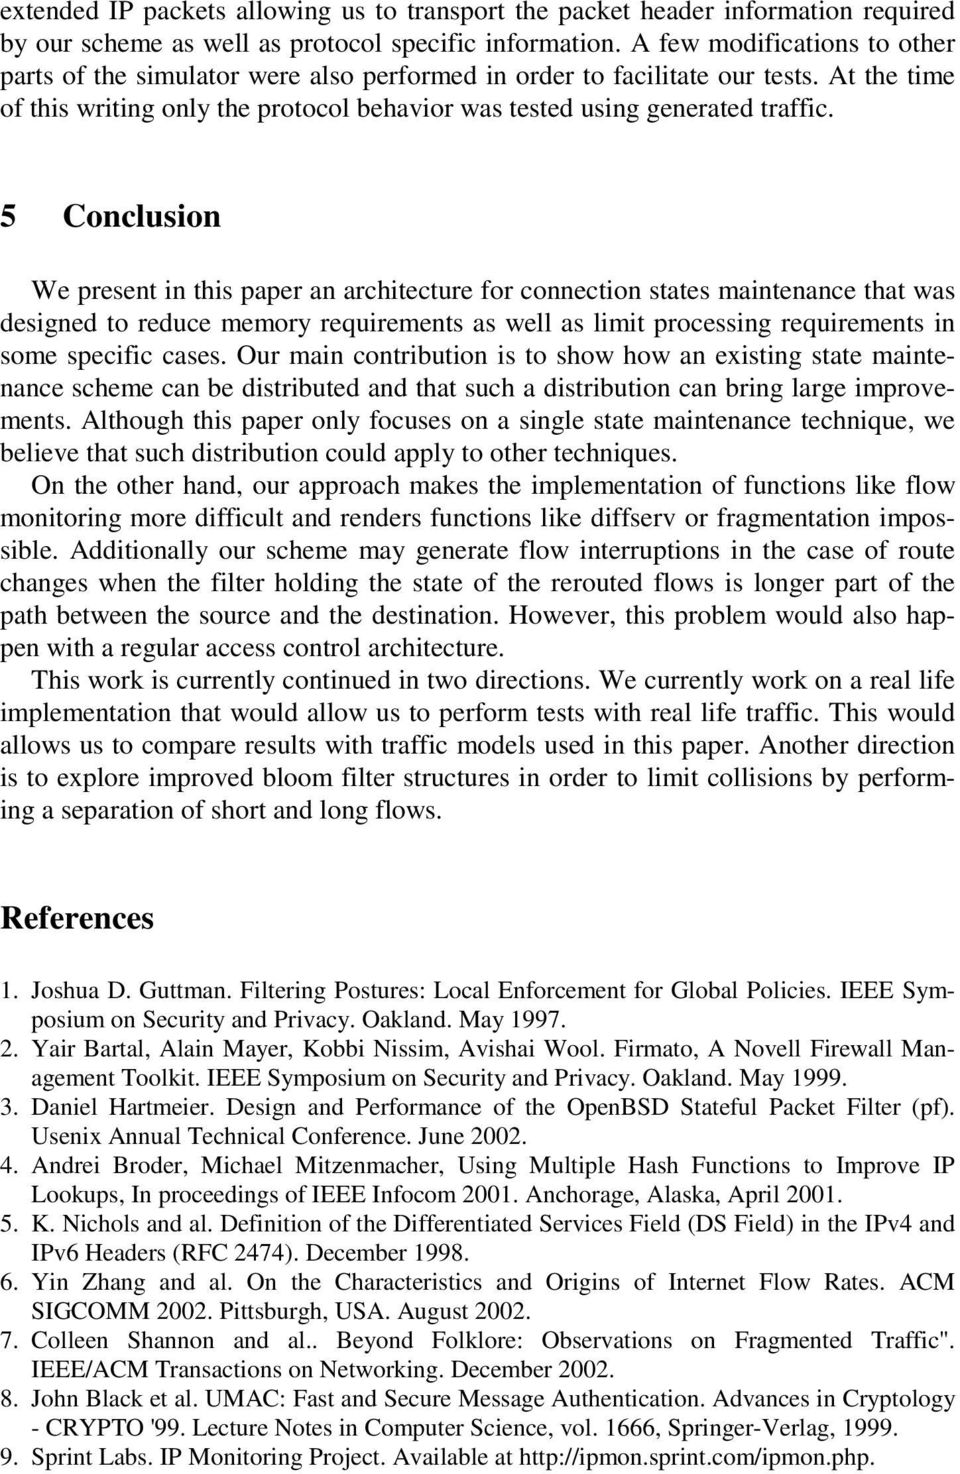 5 Conclusion We present in this paper an architecture for connection states maintenance that was designed to reduce memory requirements as well as limit processing requirements in some specific cases.